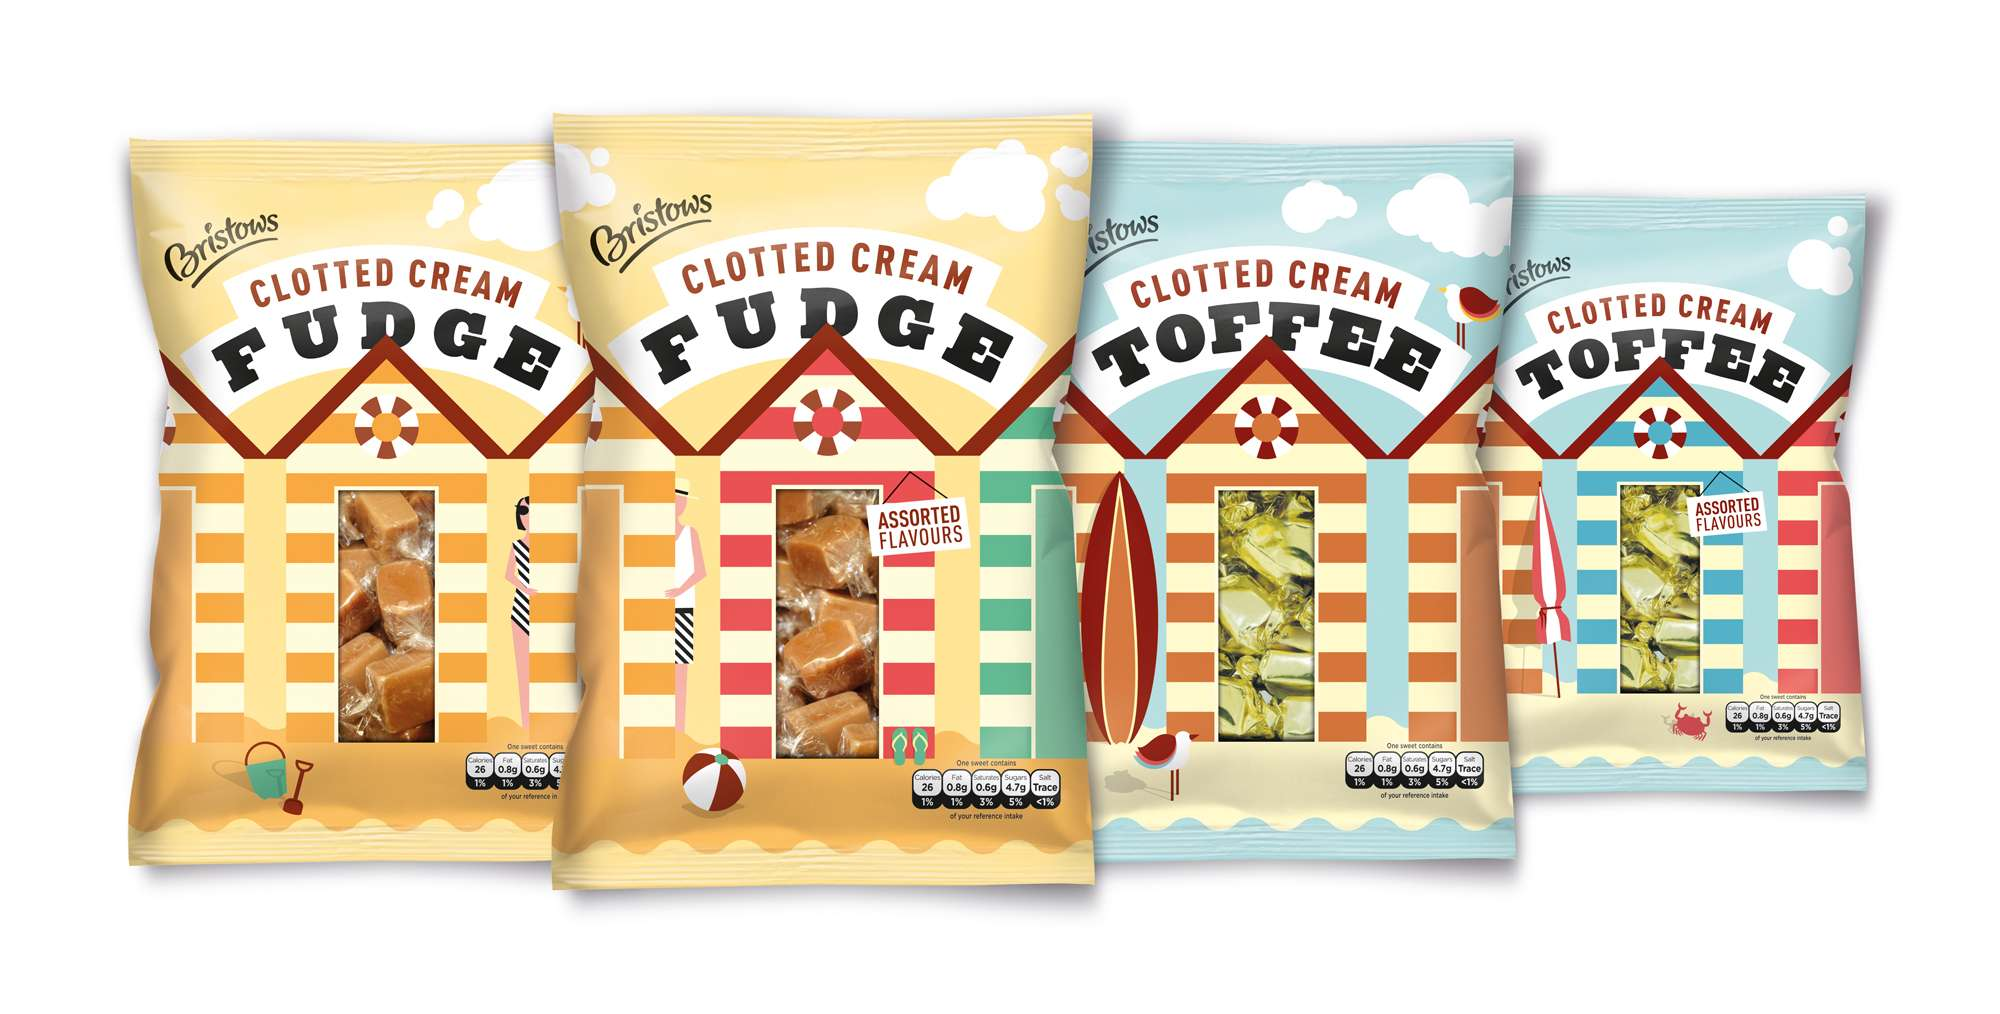 Photo: new Bristows Toffee and Fudge sweets in the packs designed by Aesop